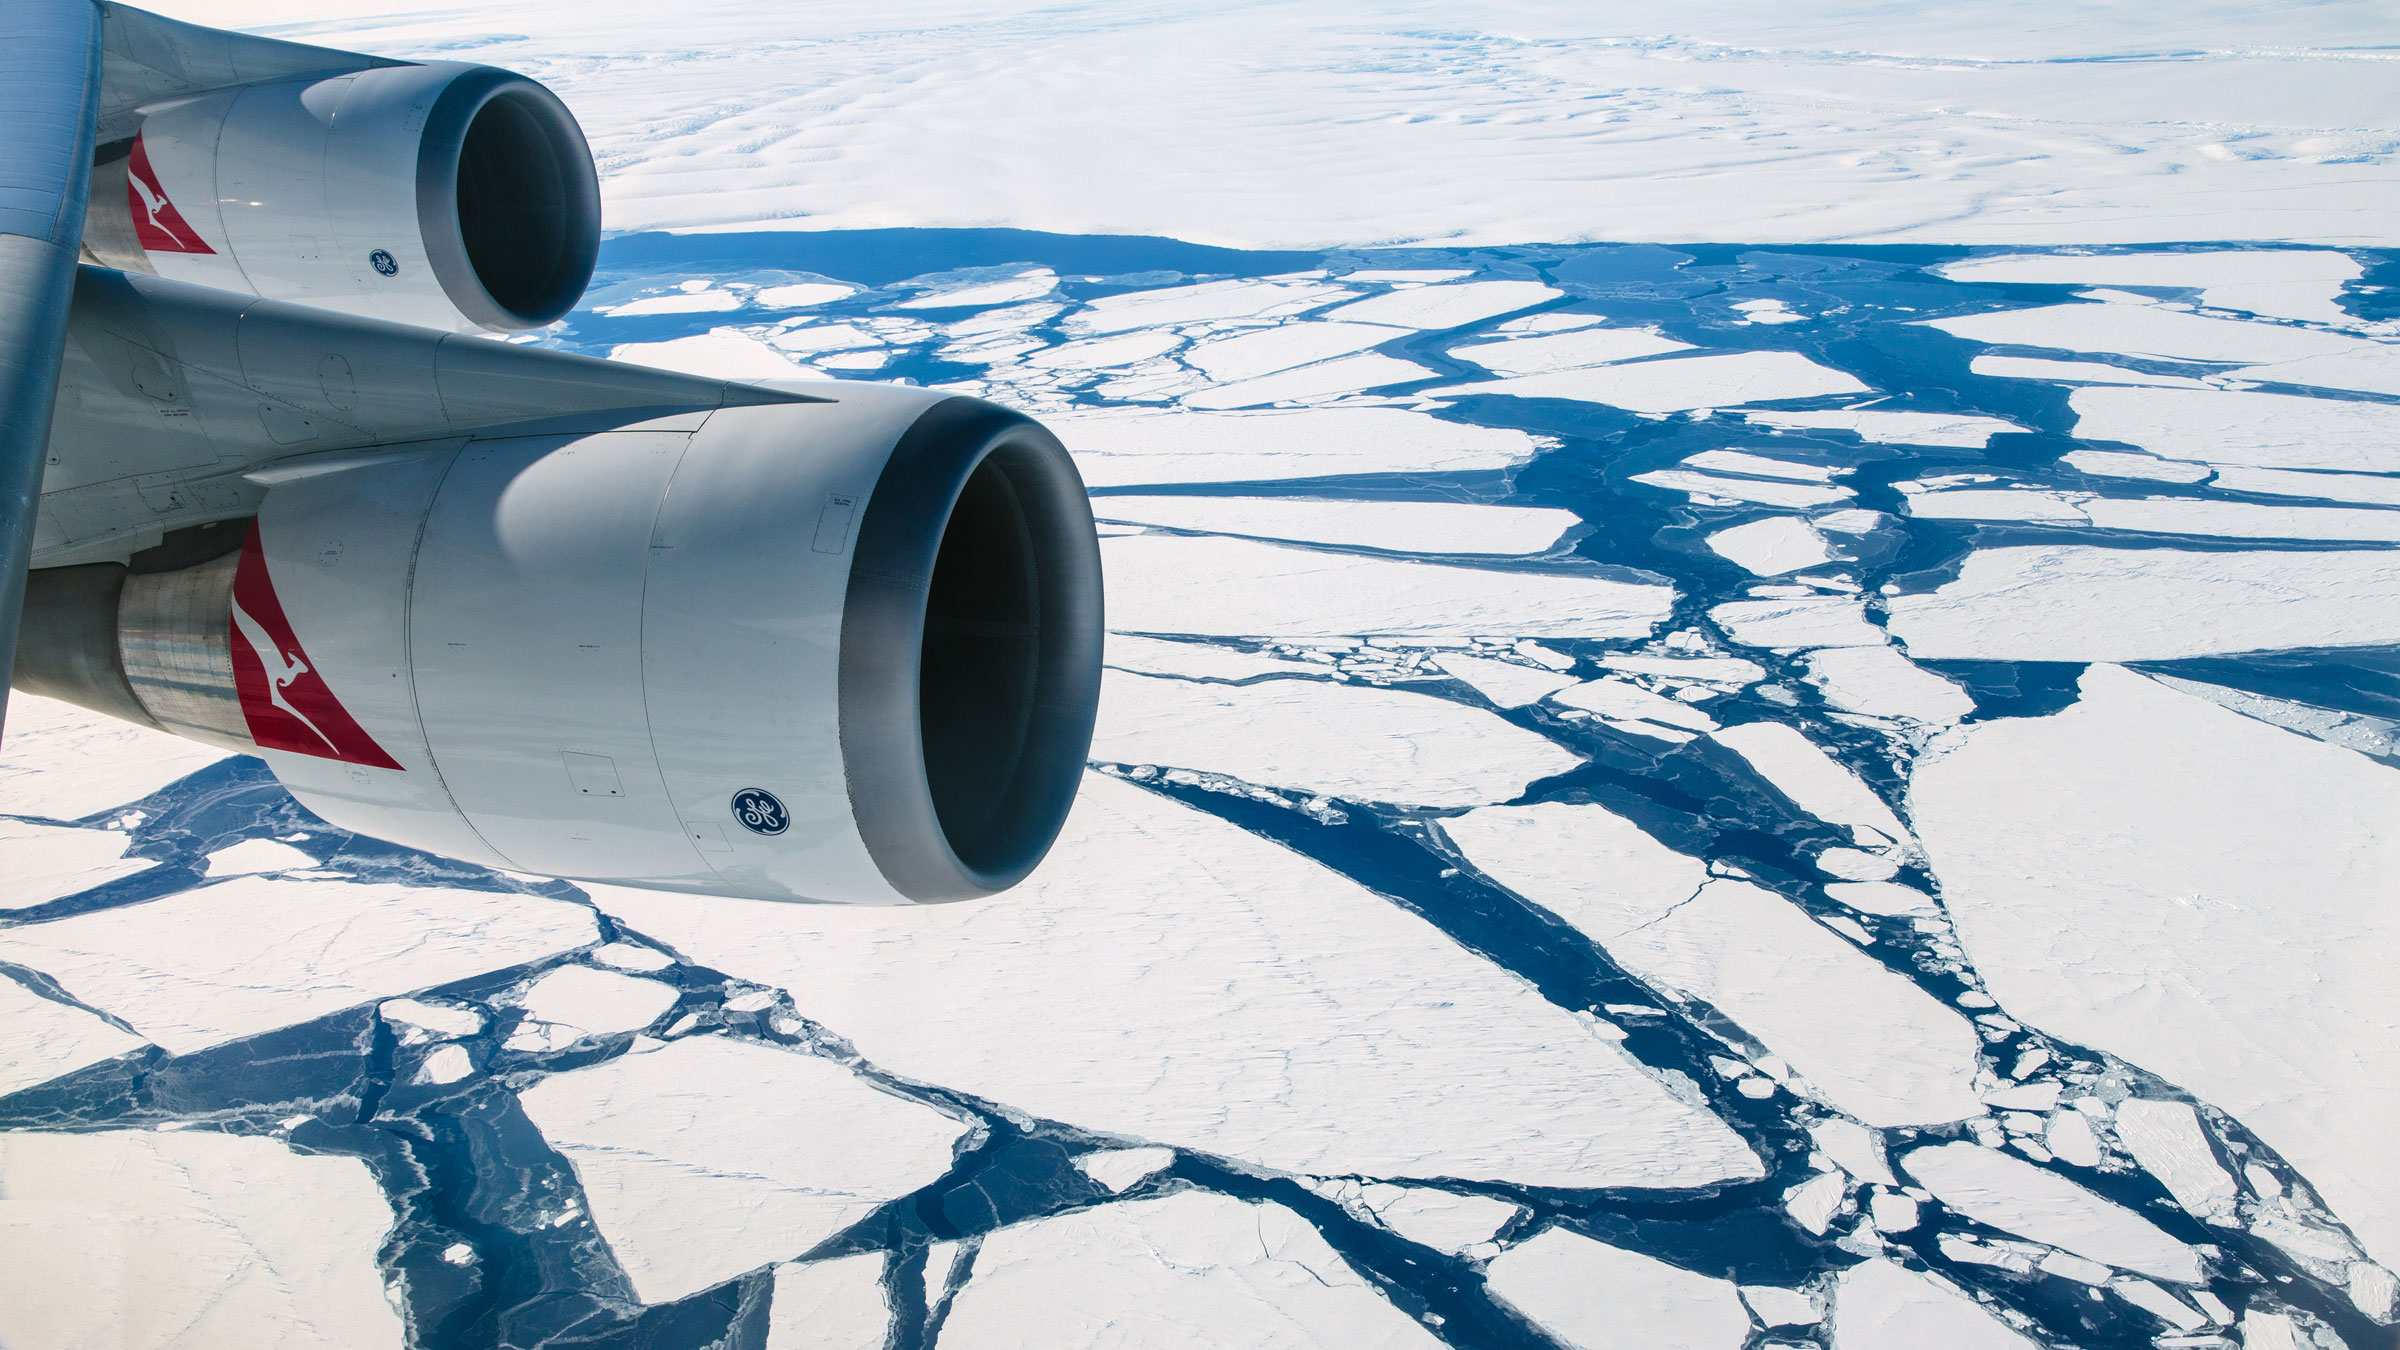 Image: Antarctica Flights